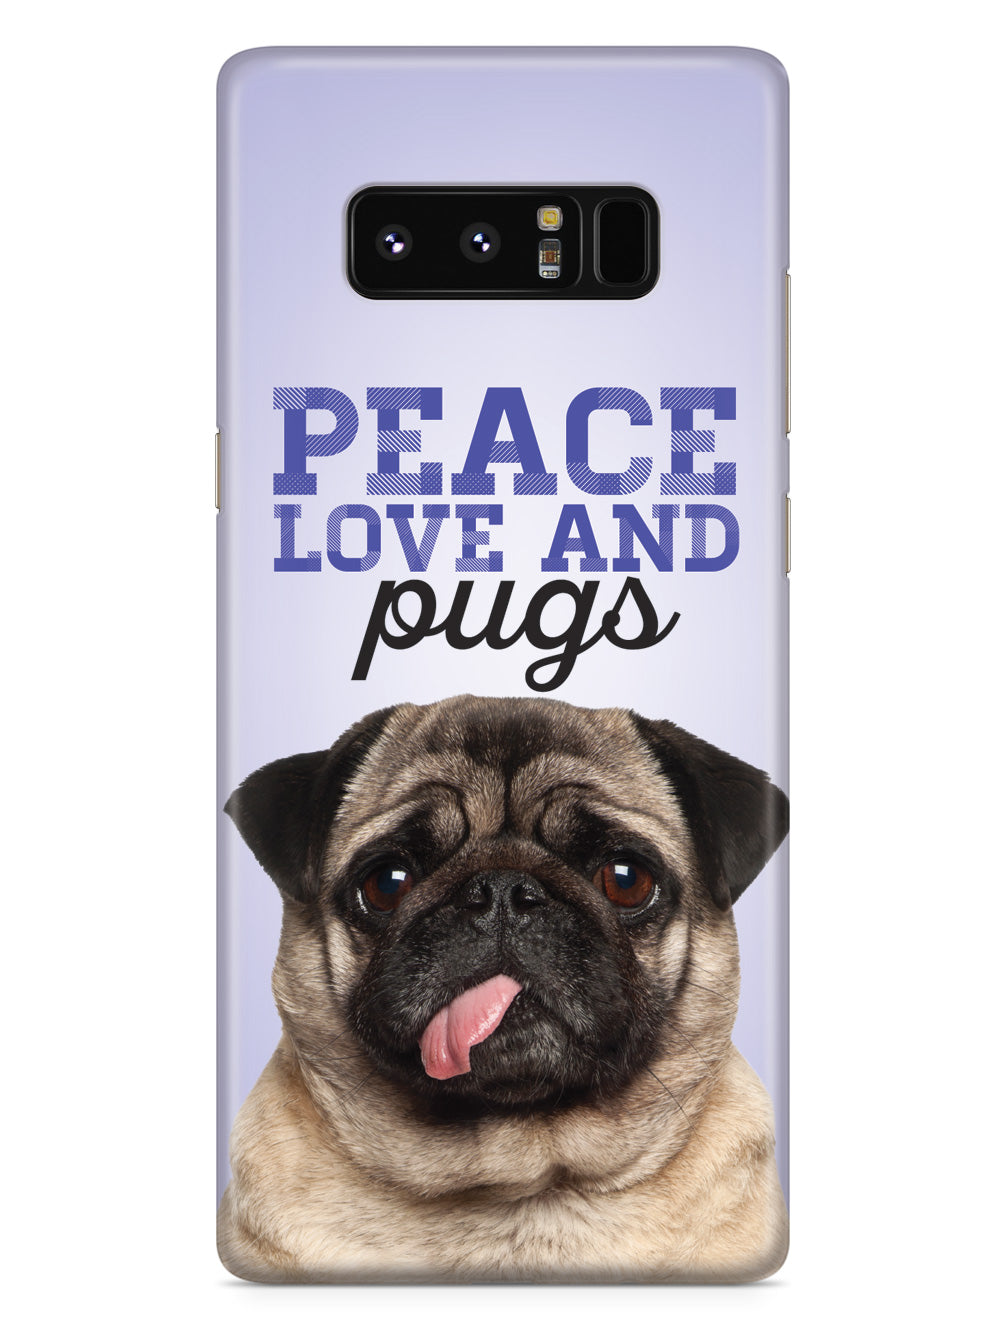 Peace Love and Pugs - Real Life Case